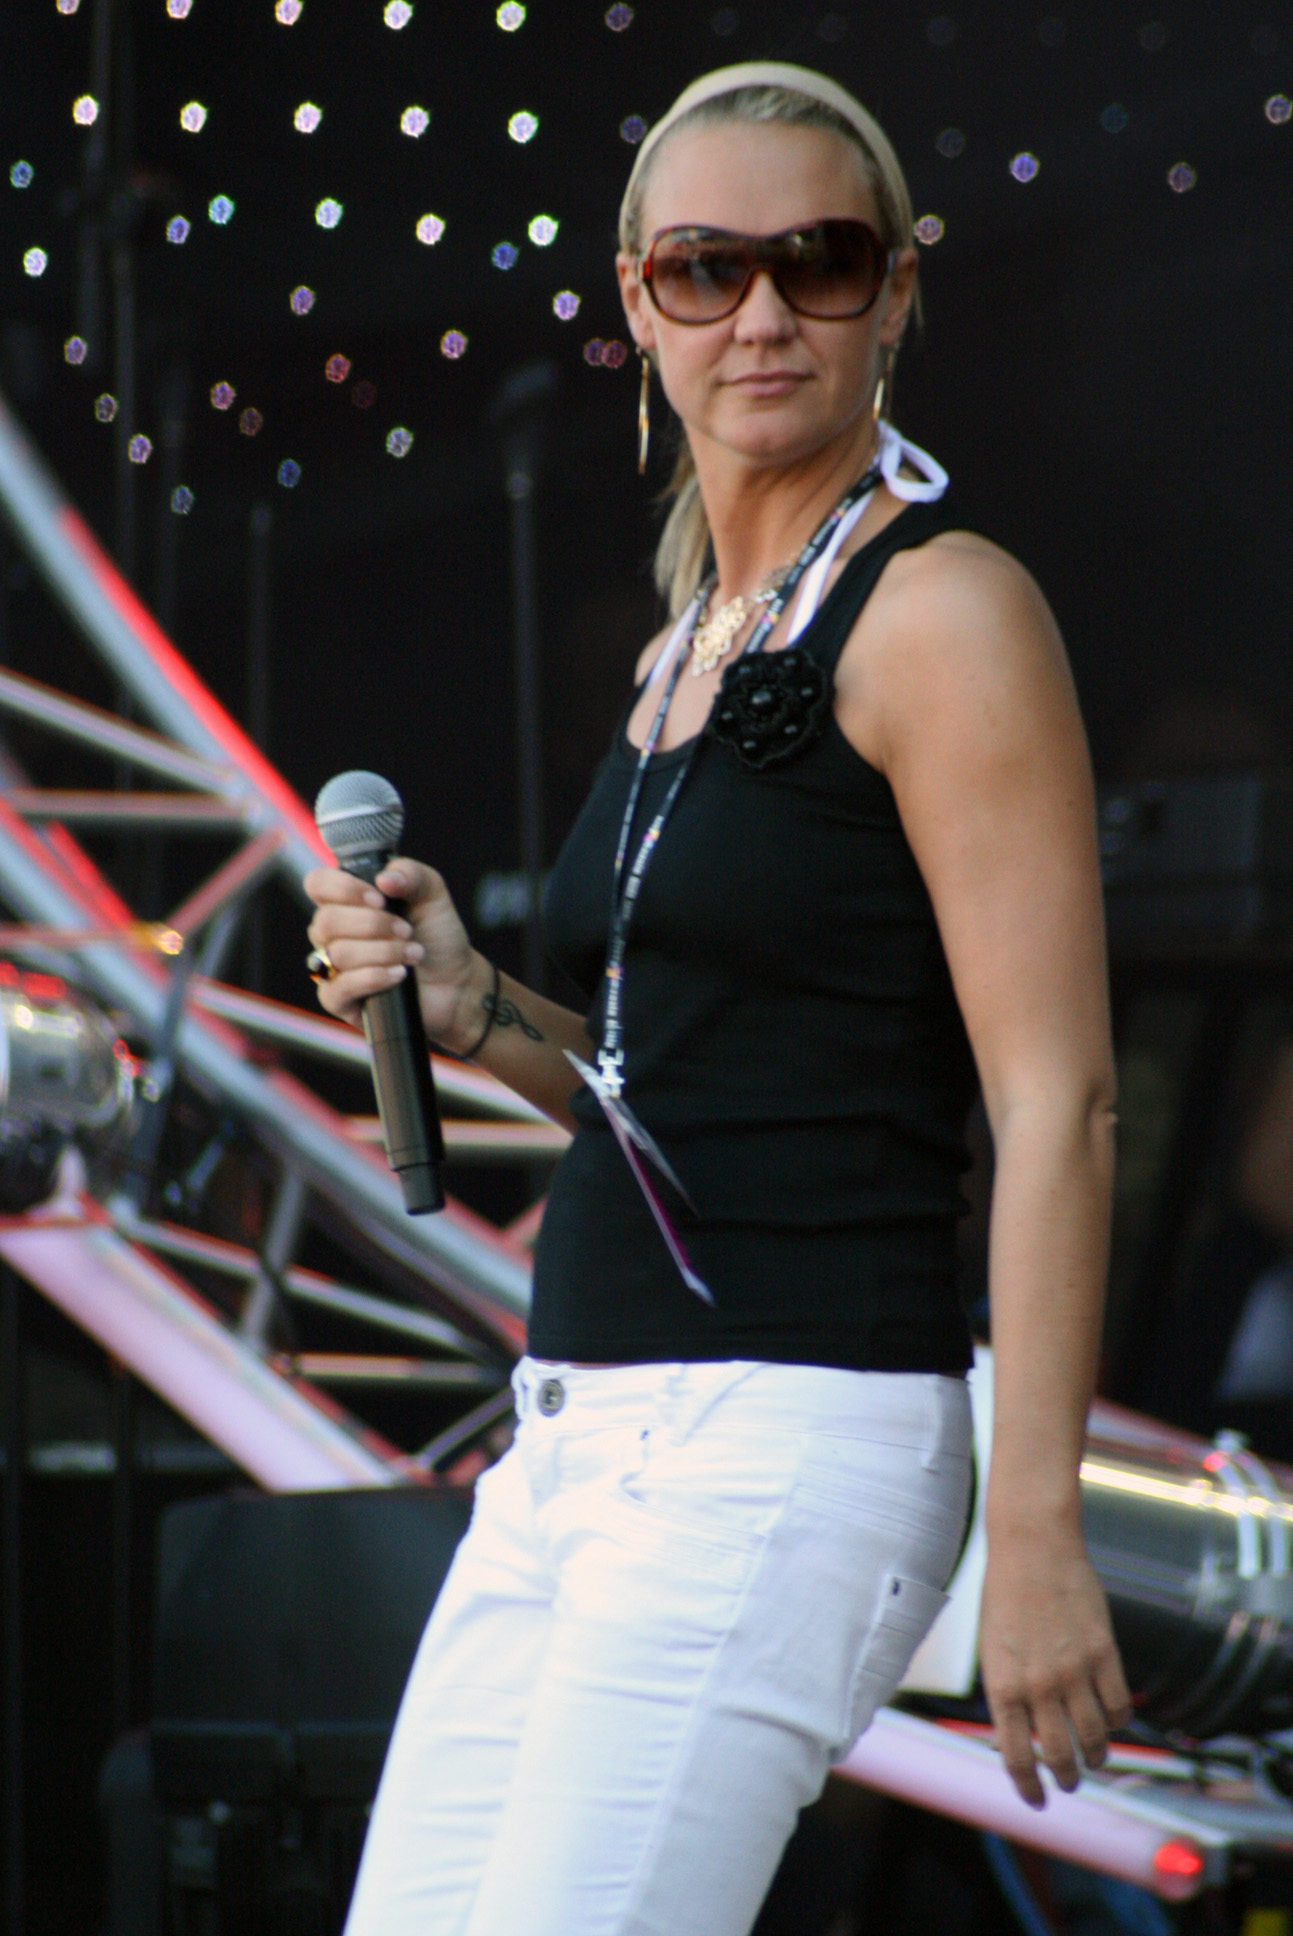 Kate Ryan Wikipedia